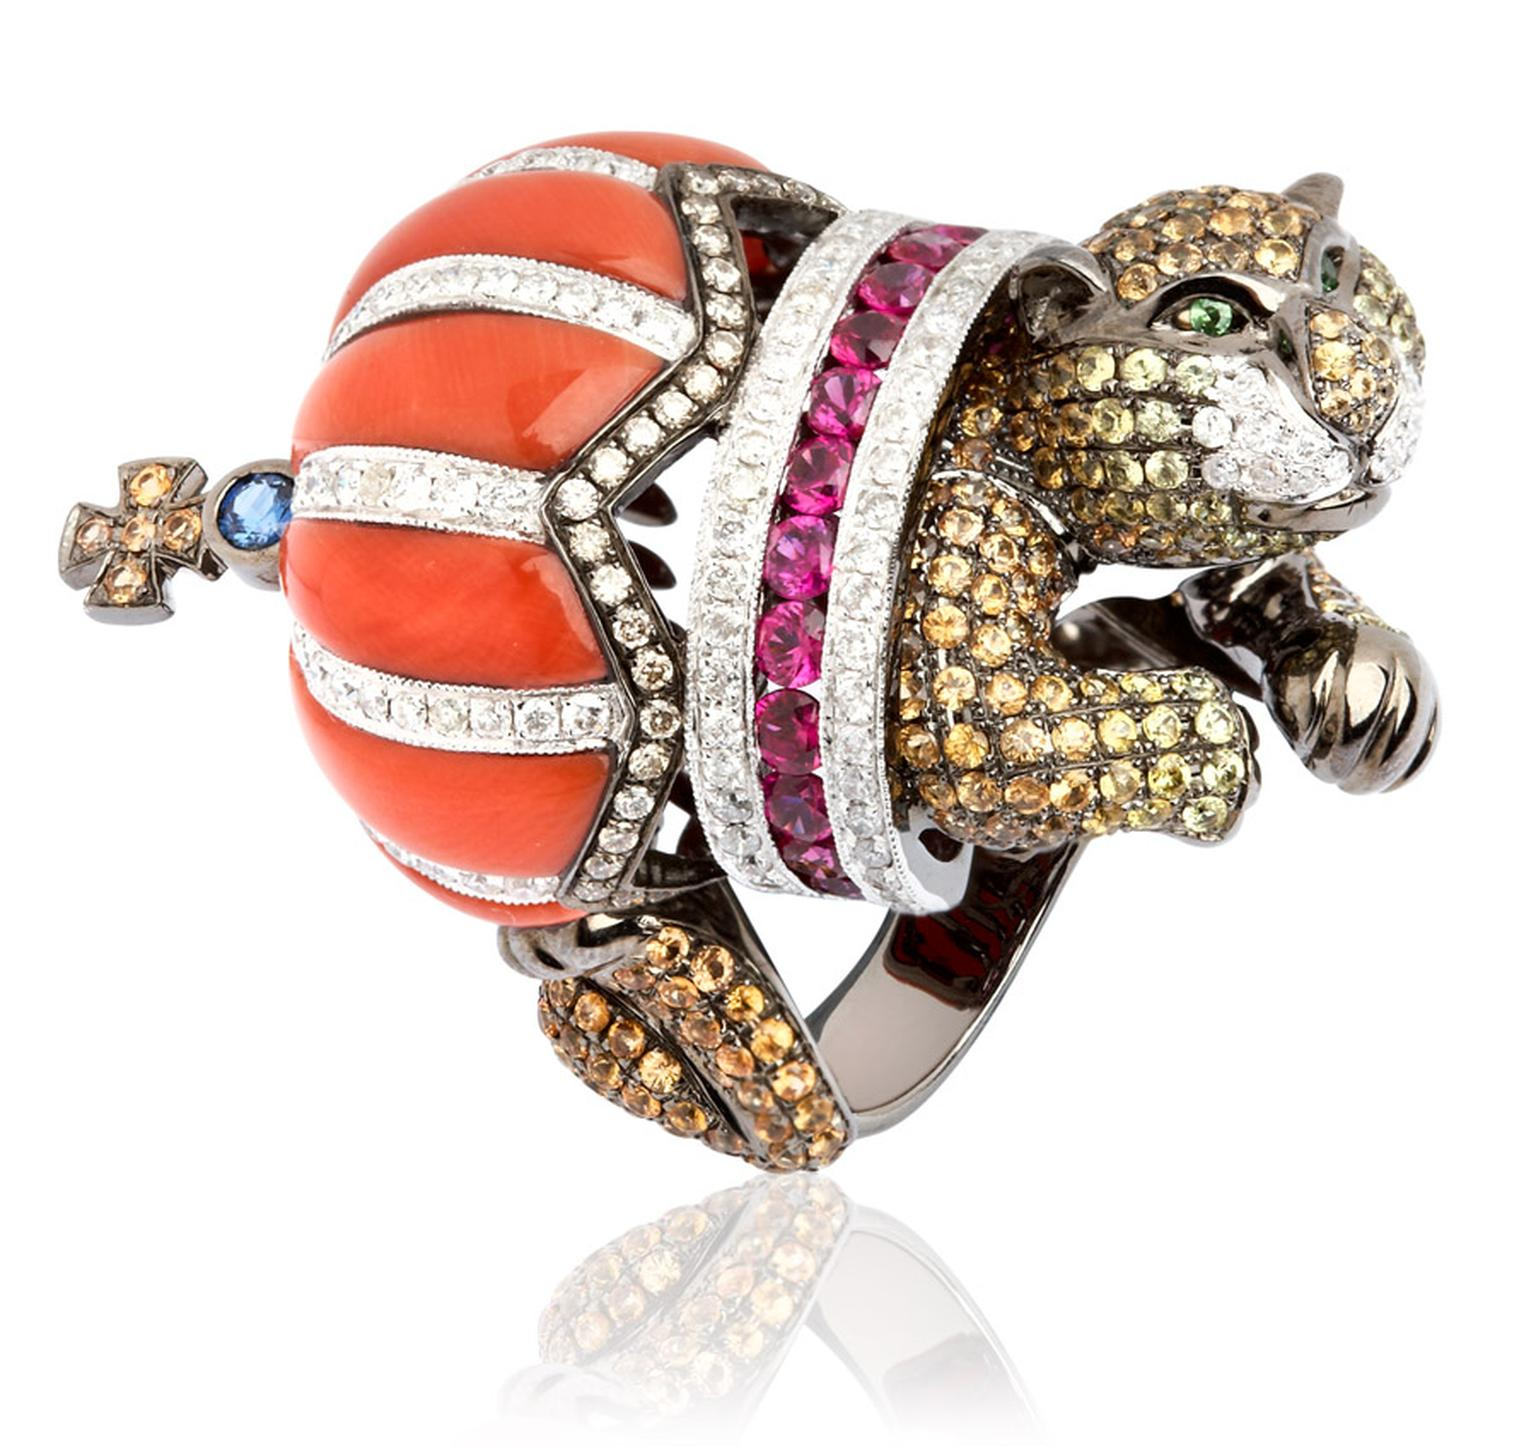 Wendy-Yue-Fantasie-Jubilee-18ct-yellow-gold-diamond-sapphire-garnet-and-ruby-Lion-ring-by-Wendy-Yue-for-Annoushka_01.jpg